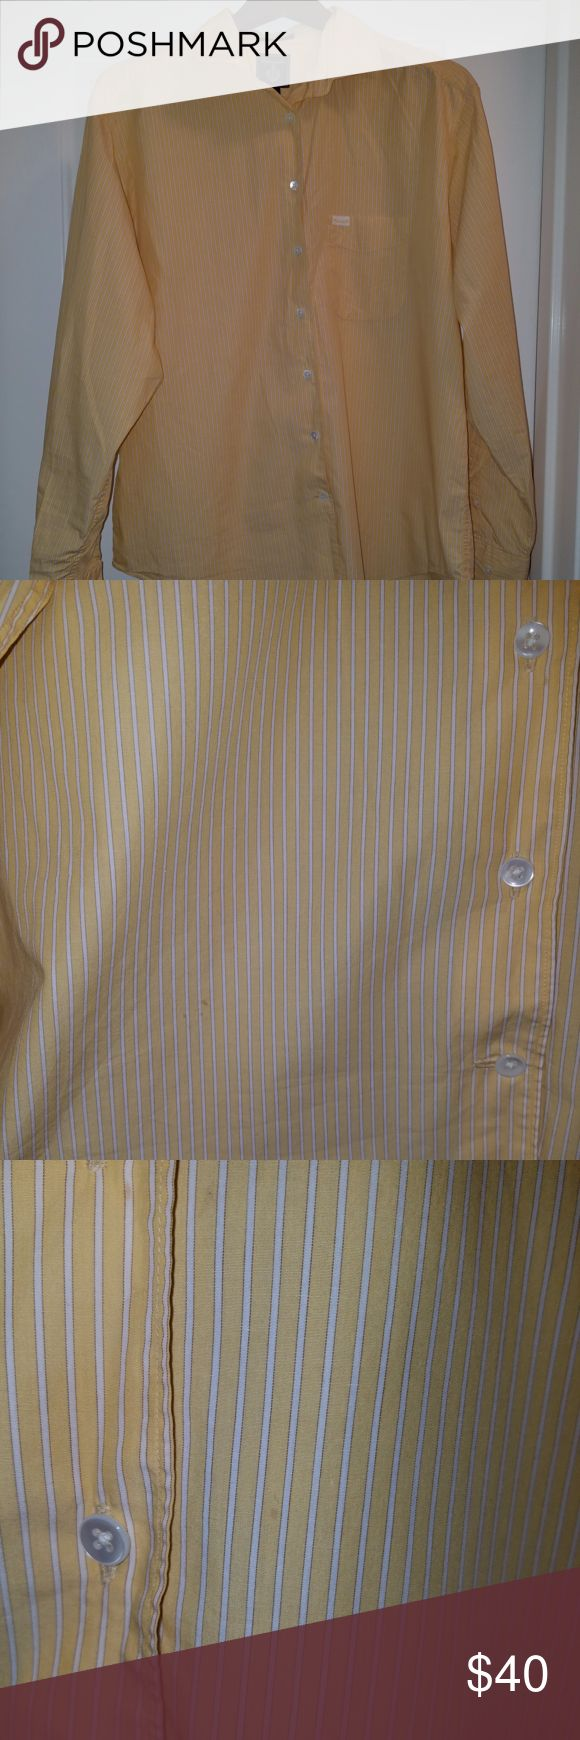 Striped Yellow Button Up Shirt Faconnable men's shirt. Designed in France and made in USA. 100% COTTON. Item is worn with a small hole in the front pocket and on the back, as well as a few small discolorations. Please see photos for details. Faconnable Shirts Dress Shirts